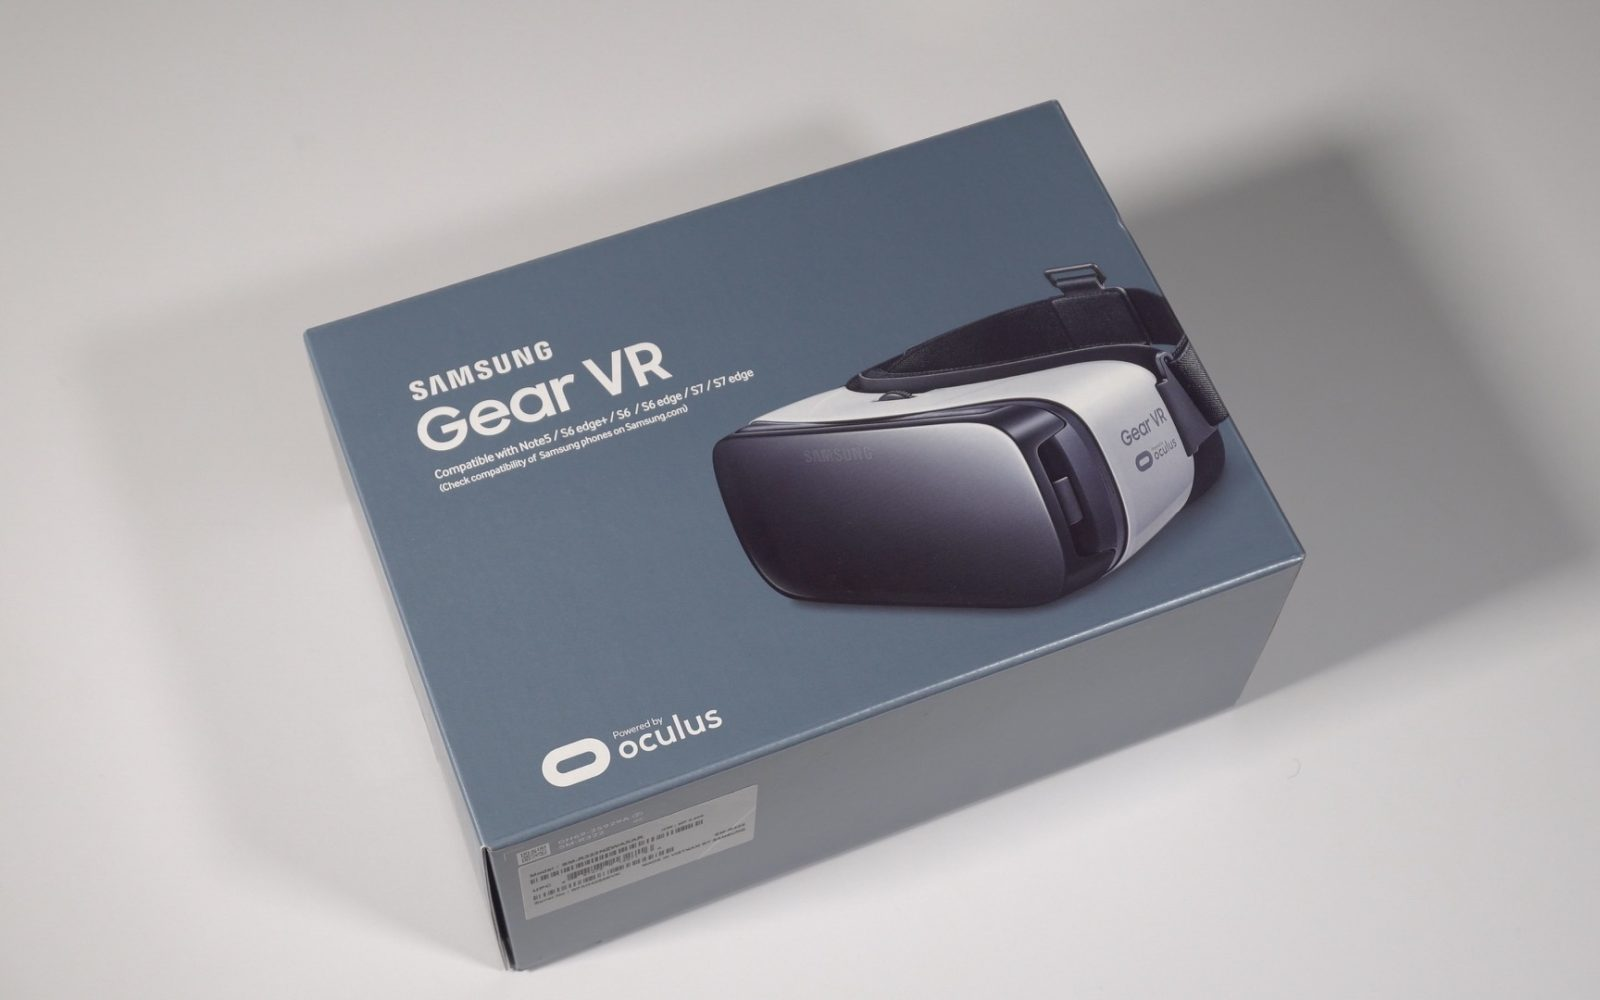 Hands-on: Samsung Gear VR unboxing and impressions - 9to5Google